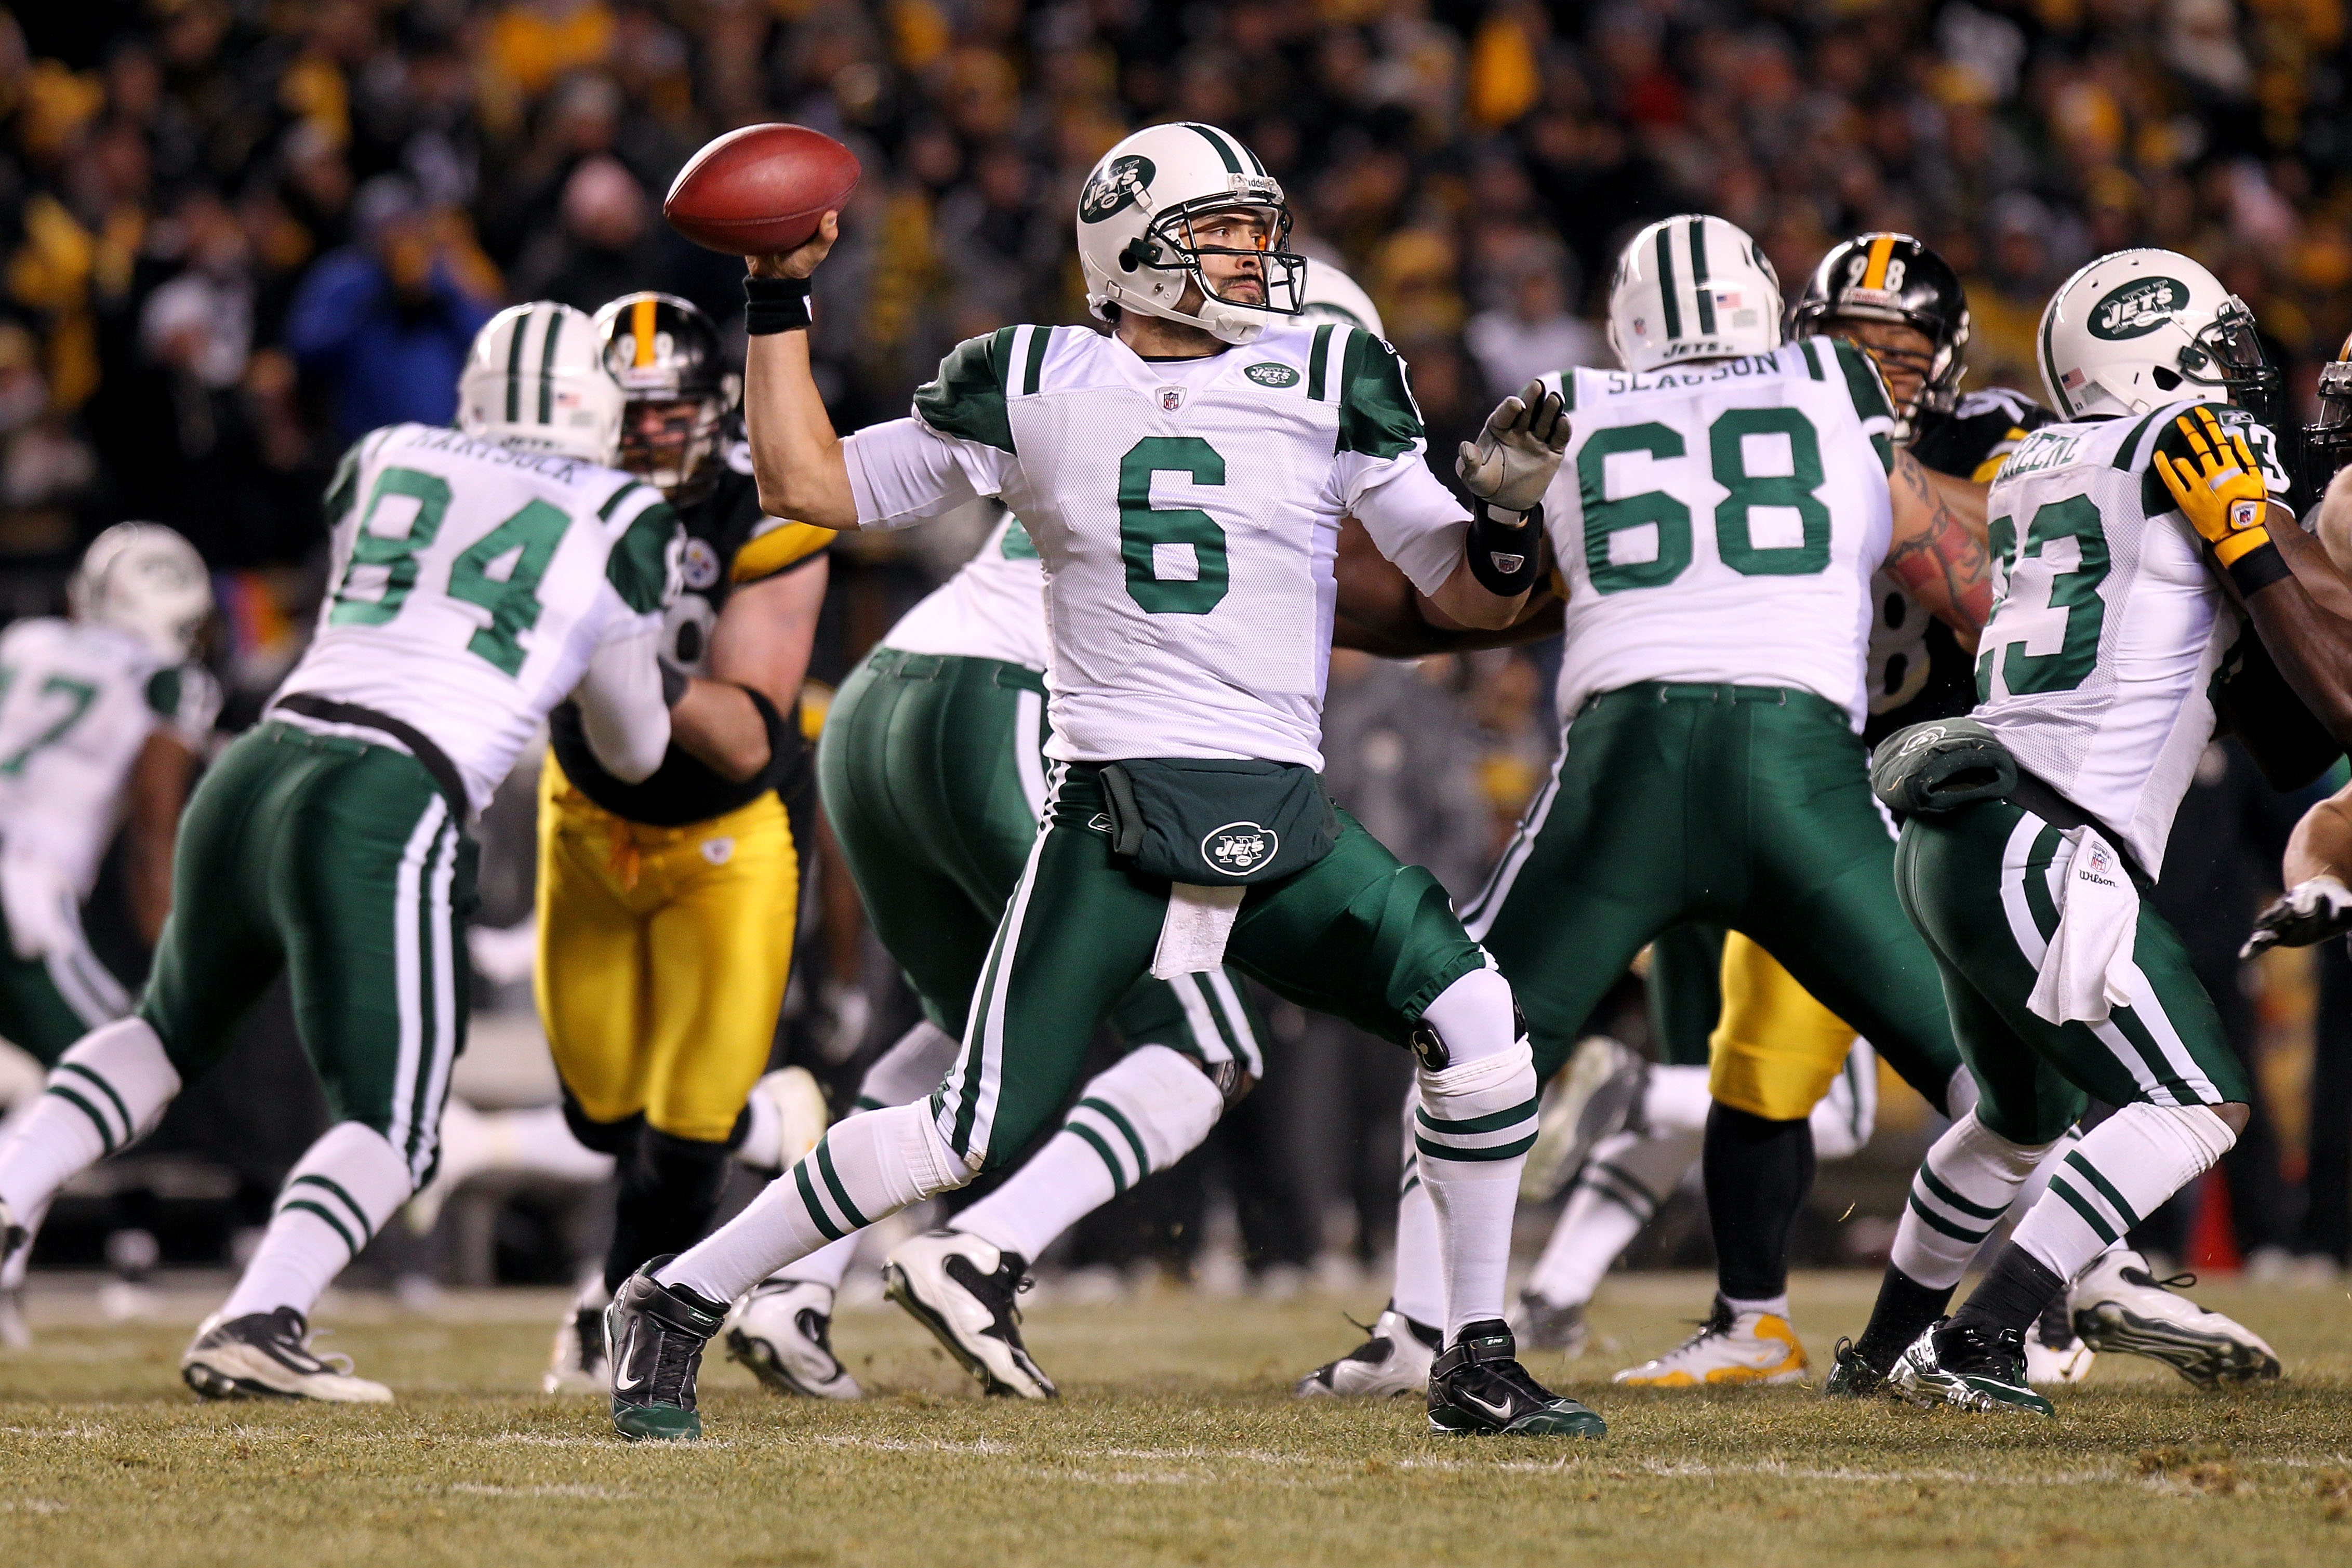 PITTSBURGH, PA - JANUARY 23:  Mark Sanchez #6 of the New York Jets drops back to pass against the Pittsburgh Steelers during the 2011 AFC Championship game at Heinz Field on January 23, 2011 in Pittsburgh, Pennsylvania.  (Photo by Nick Laham/Getty Images)